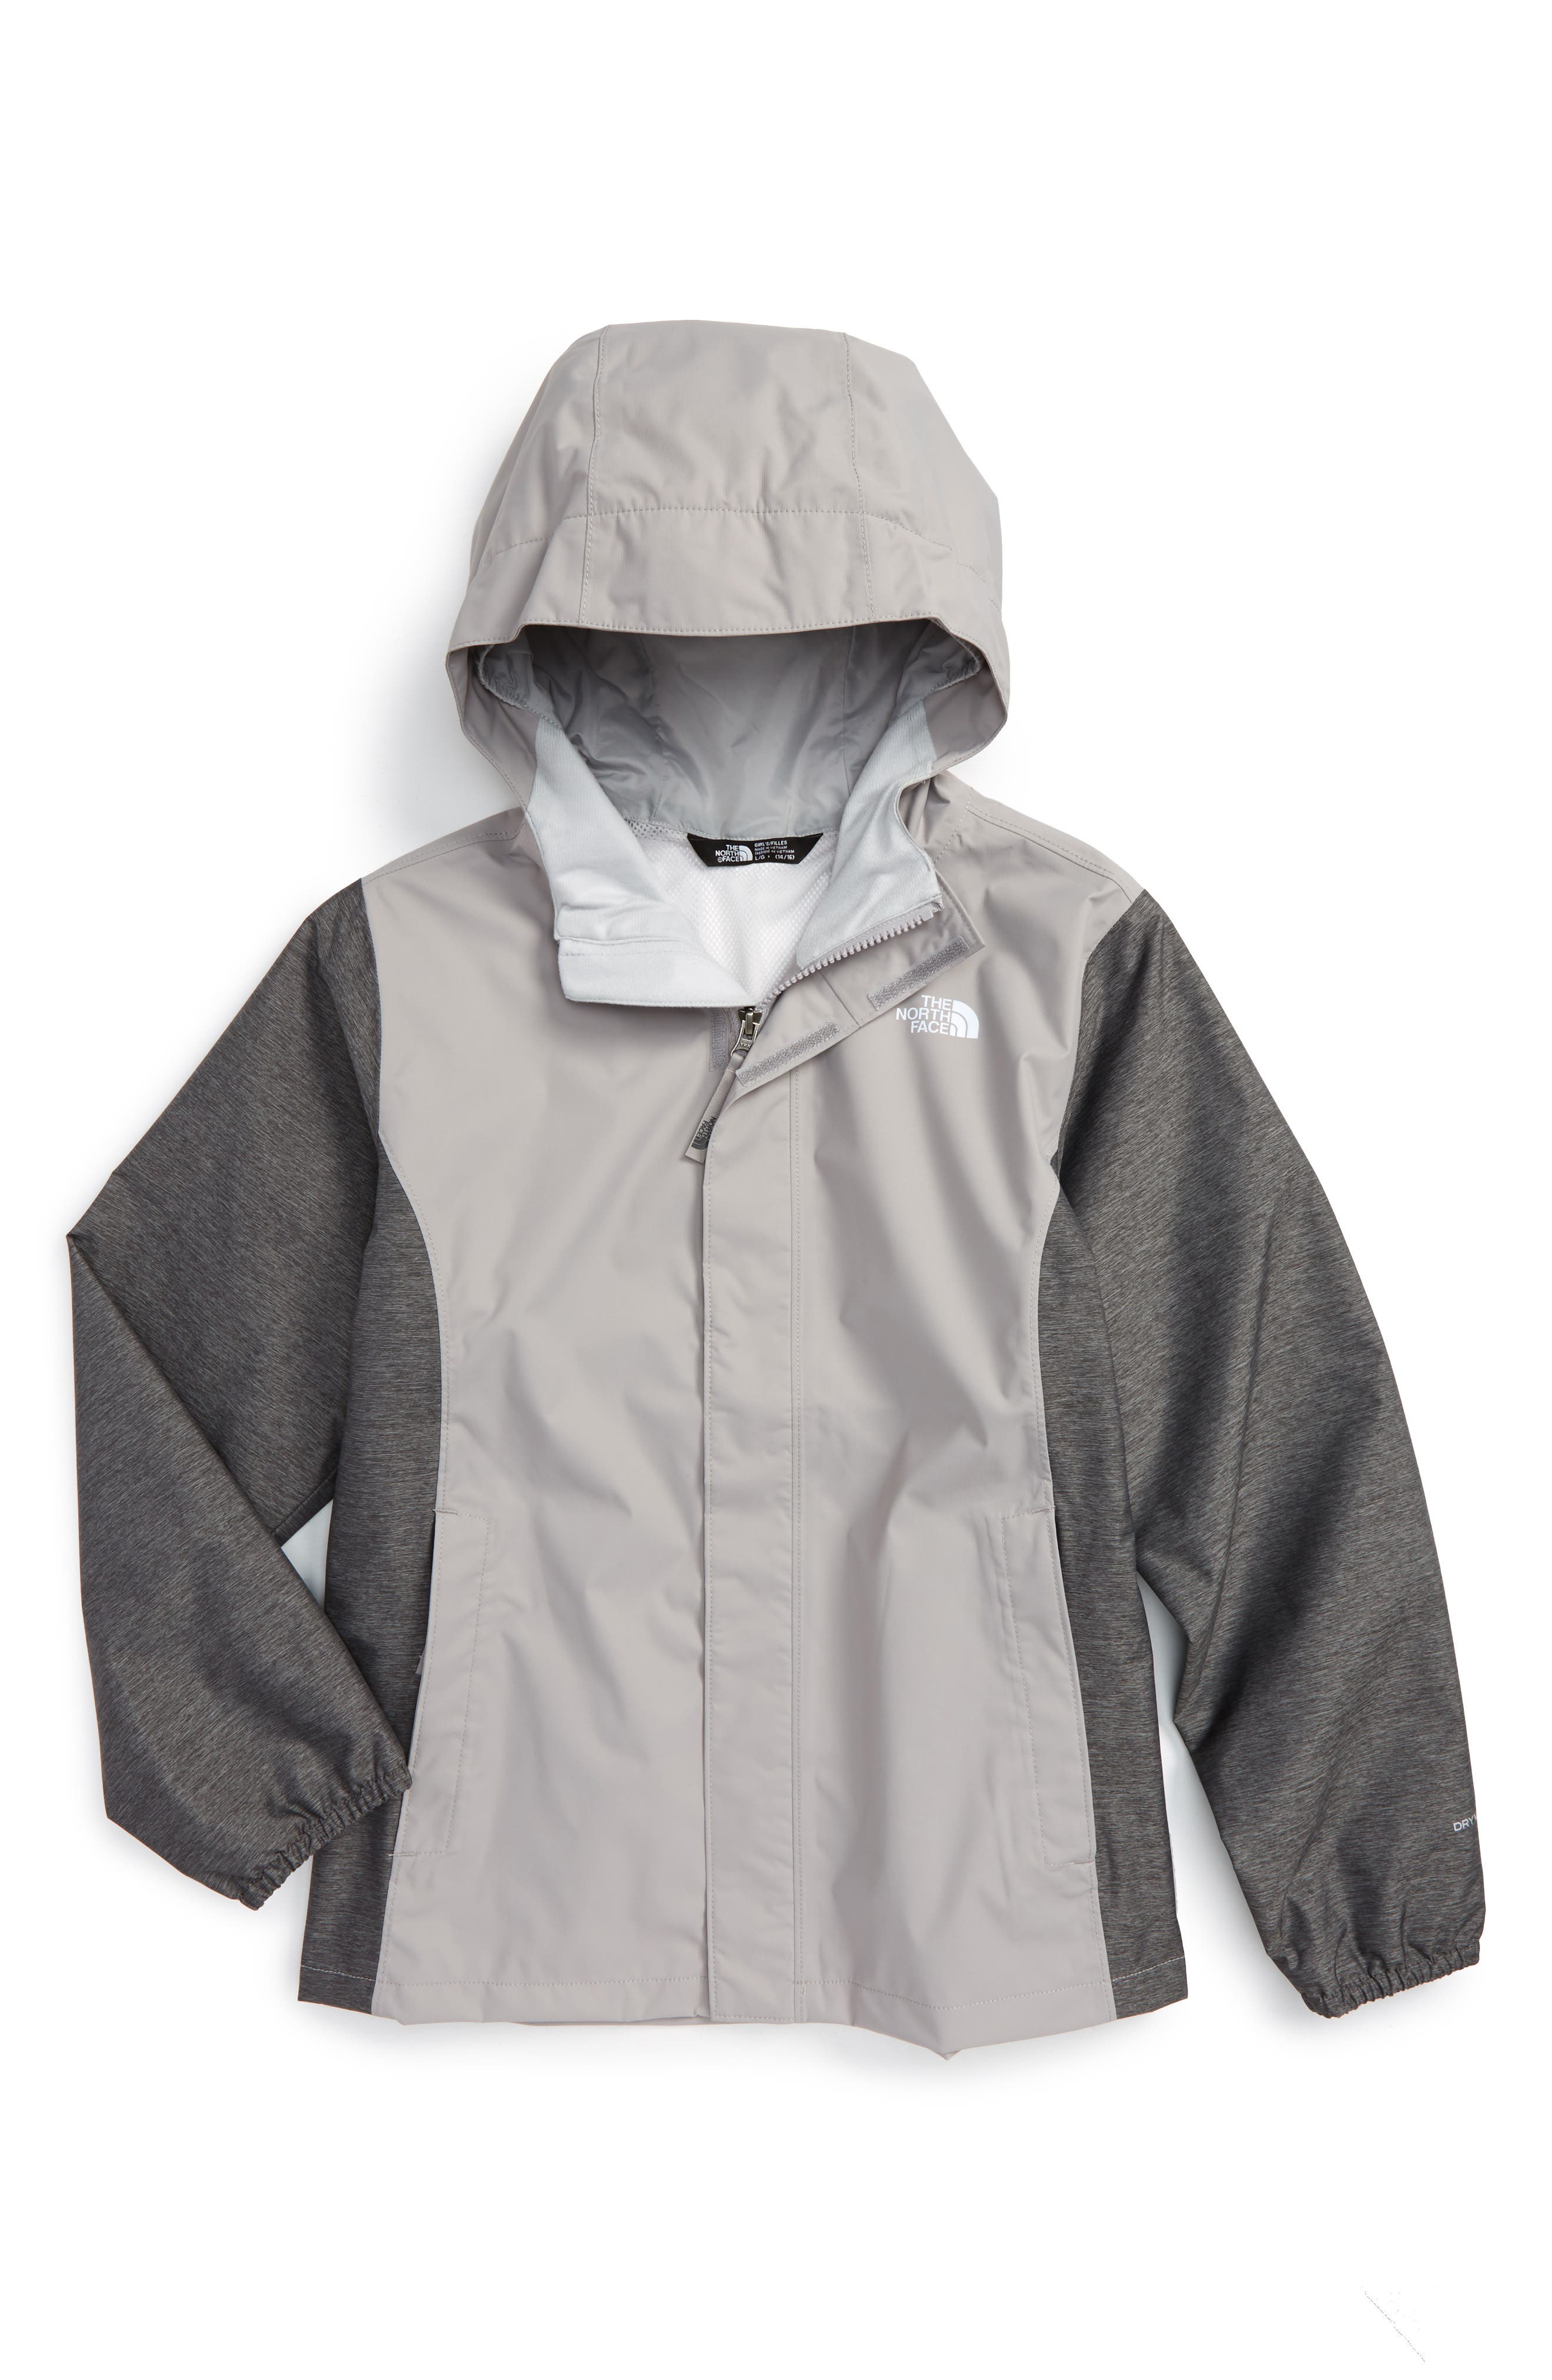 Alternate Image 1 Selected - The North Face 'Resolve' Reflective Waterproof Jacket (Big Girls)